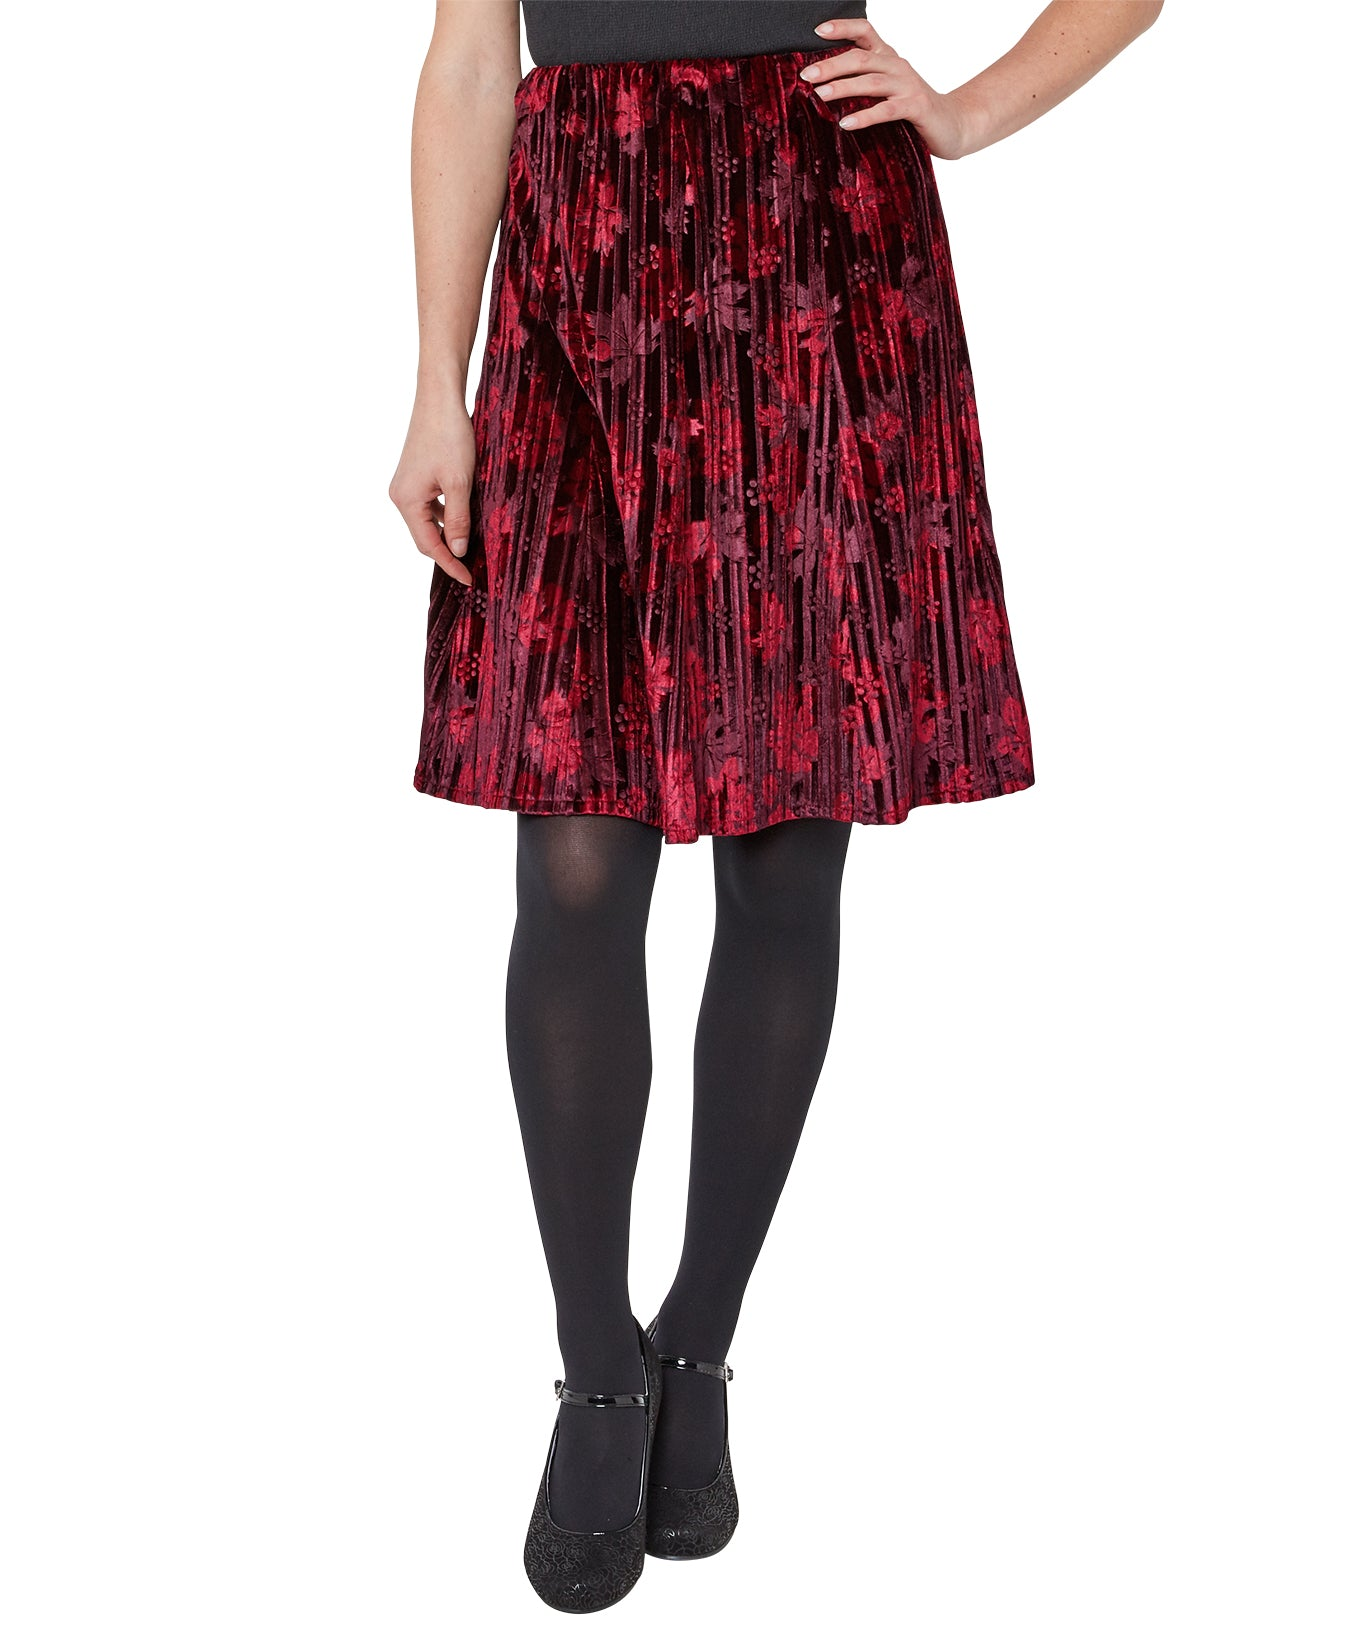 Stunning crushed velvet skirt sale!